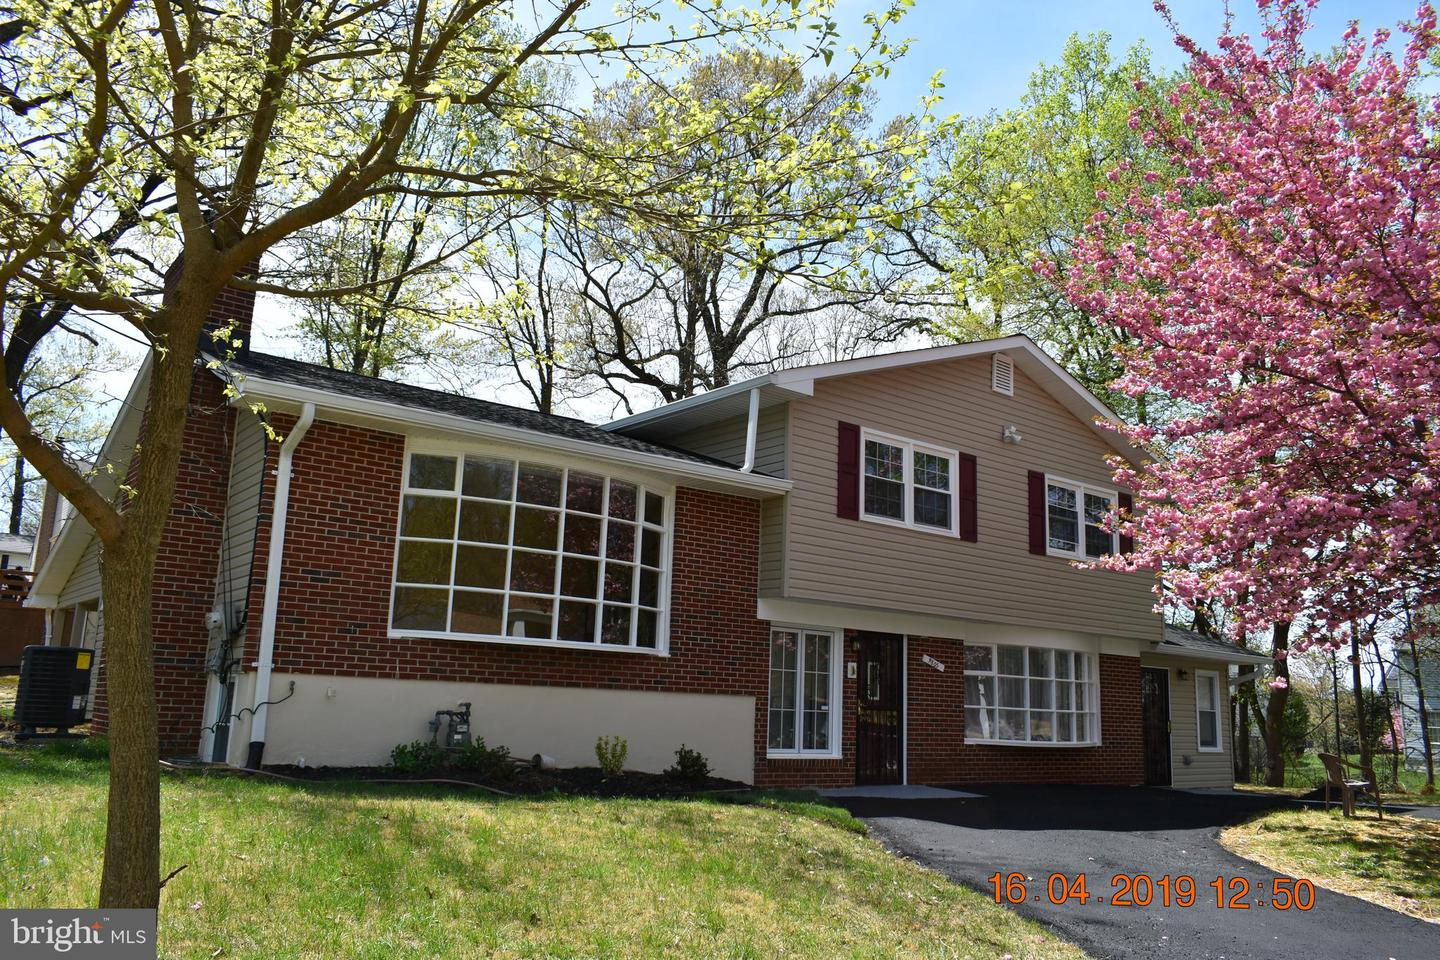 9805 E FRANKLIN AVENUE, GLENN DALE, Maryland